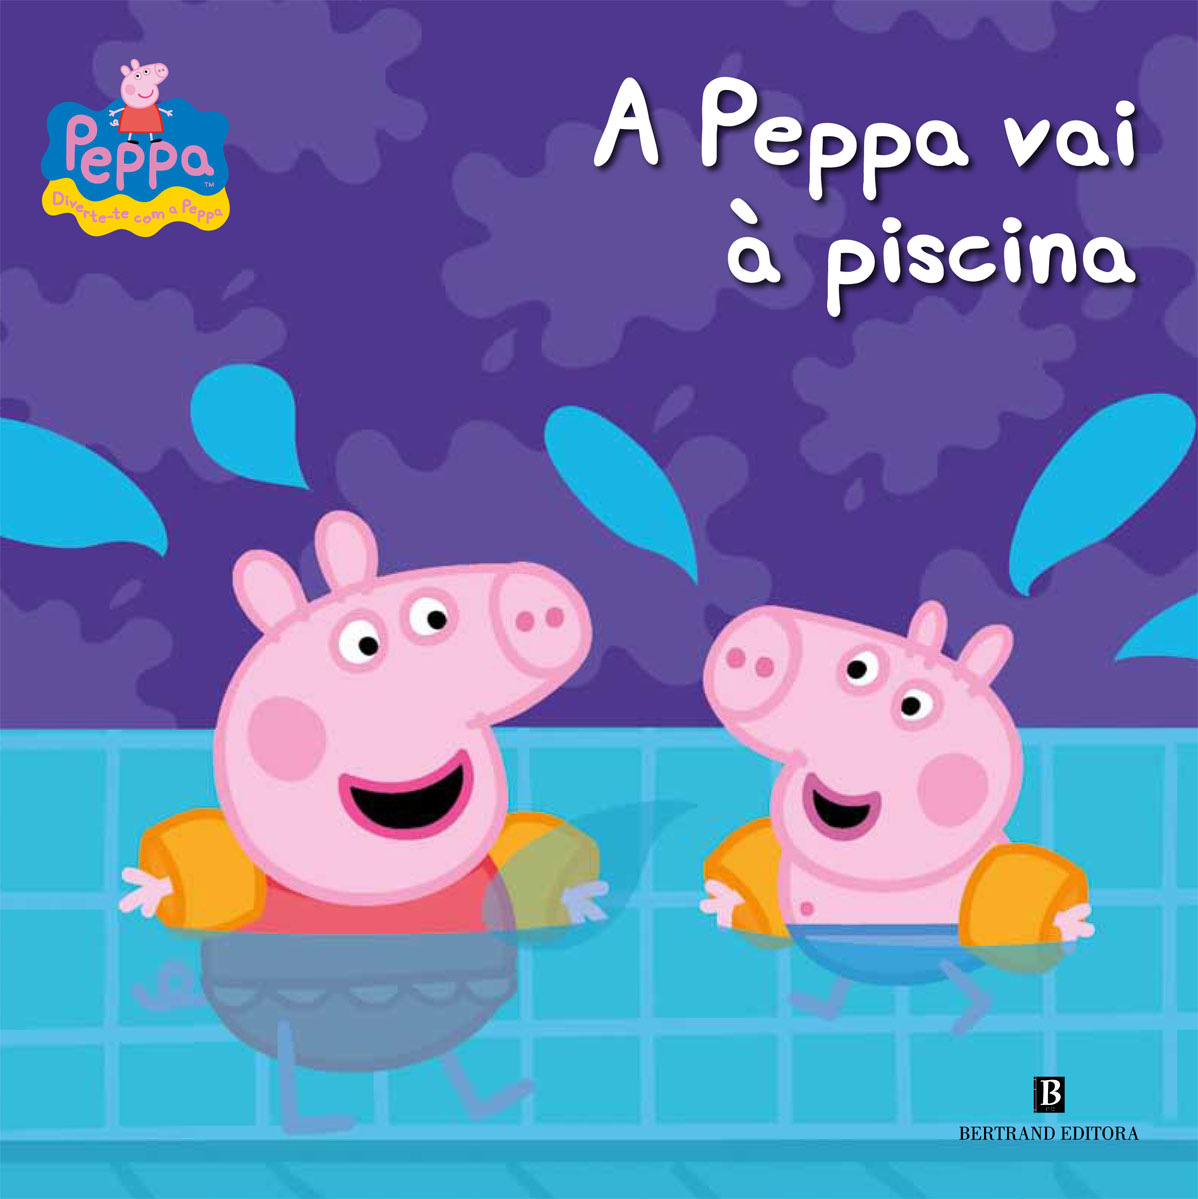 Piscina Peppa Pig 301 Moved Permanently